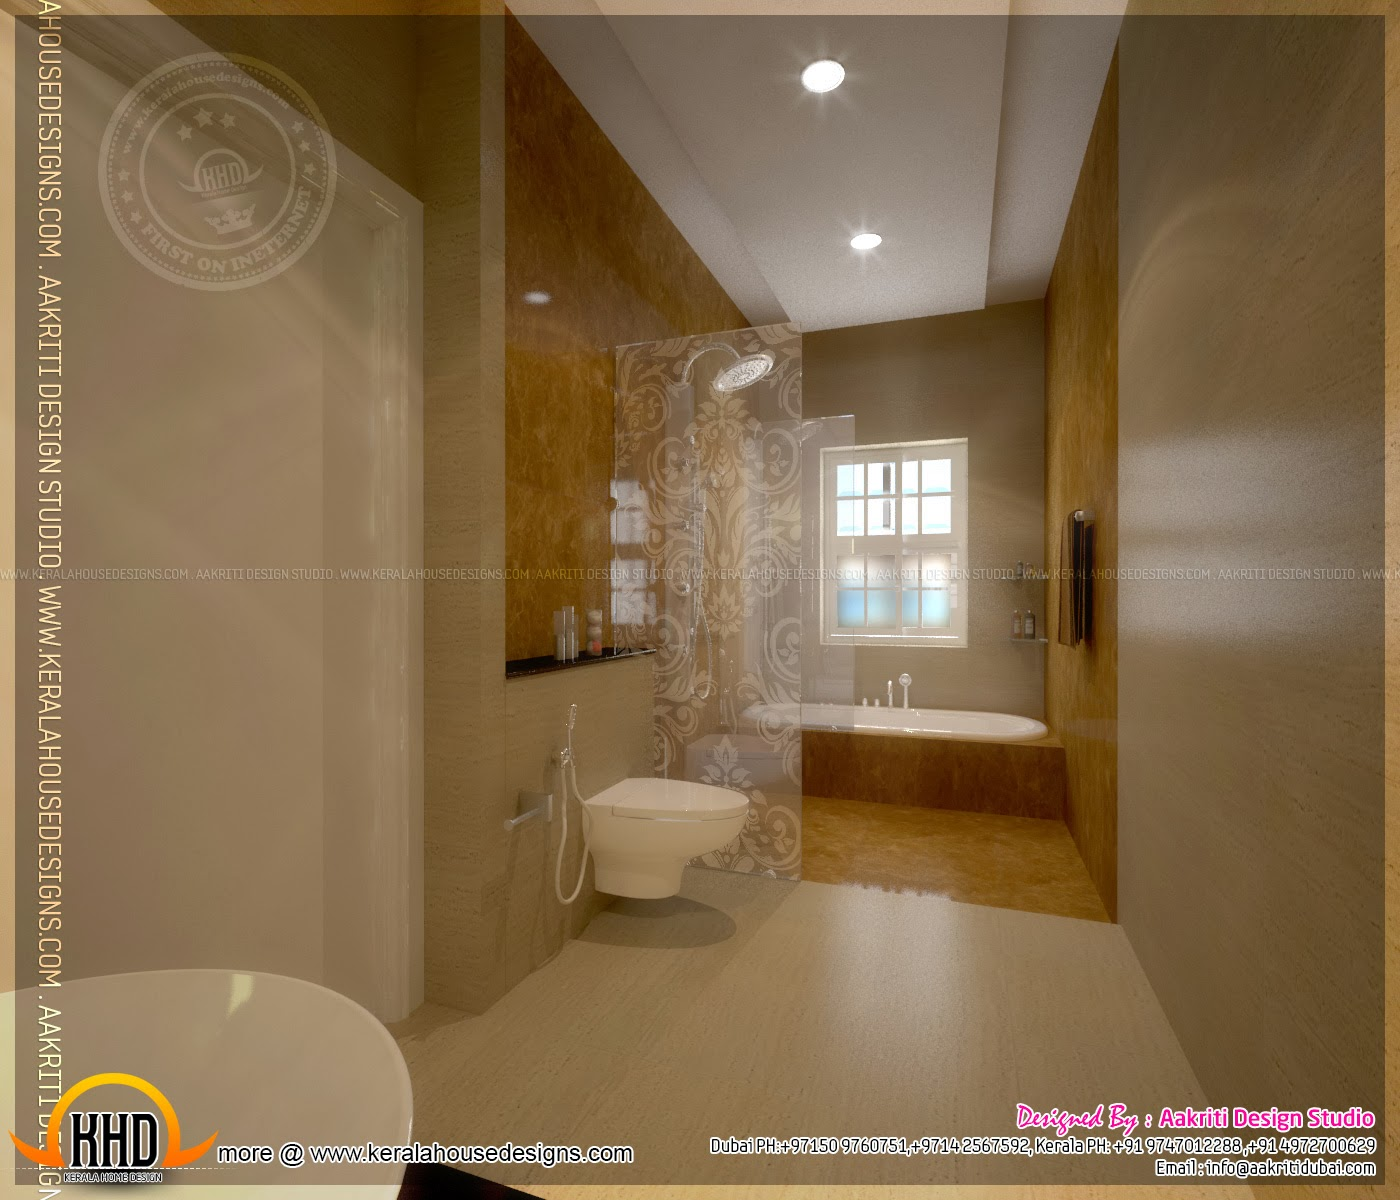 26 new bathroom tiles kerala price Bathroom shower designs with price